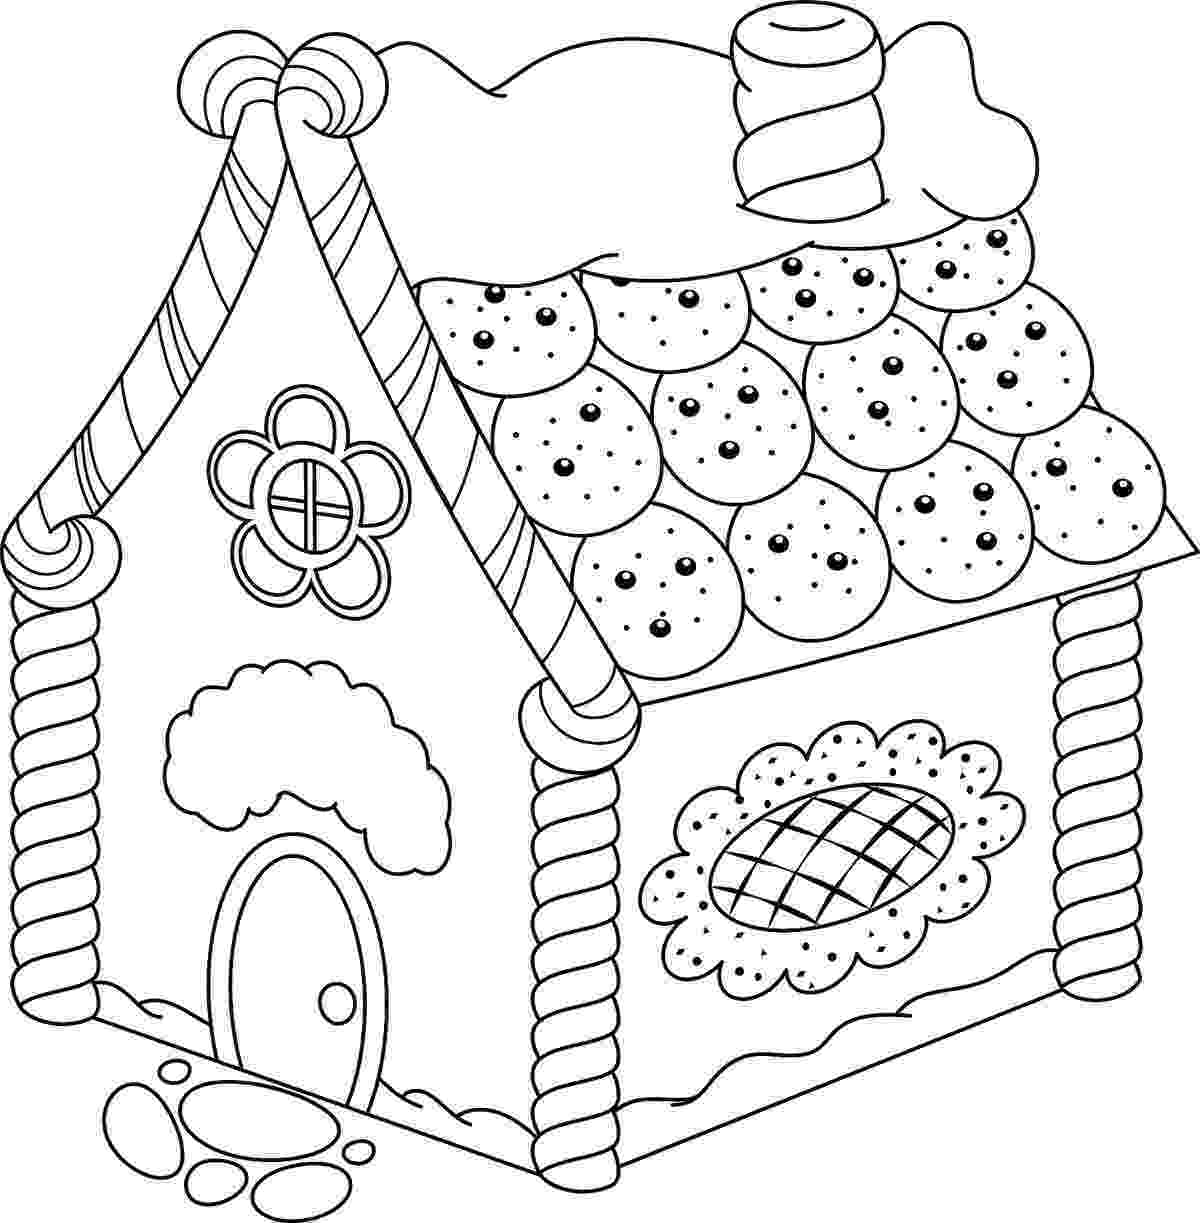 gingerbread coloring page free printable gingerbread man coloring pages for kids gingerbread coloring page